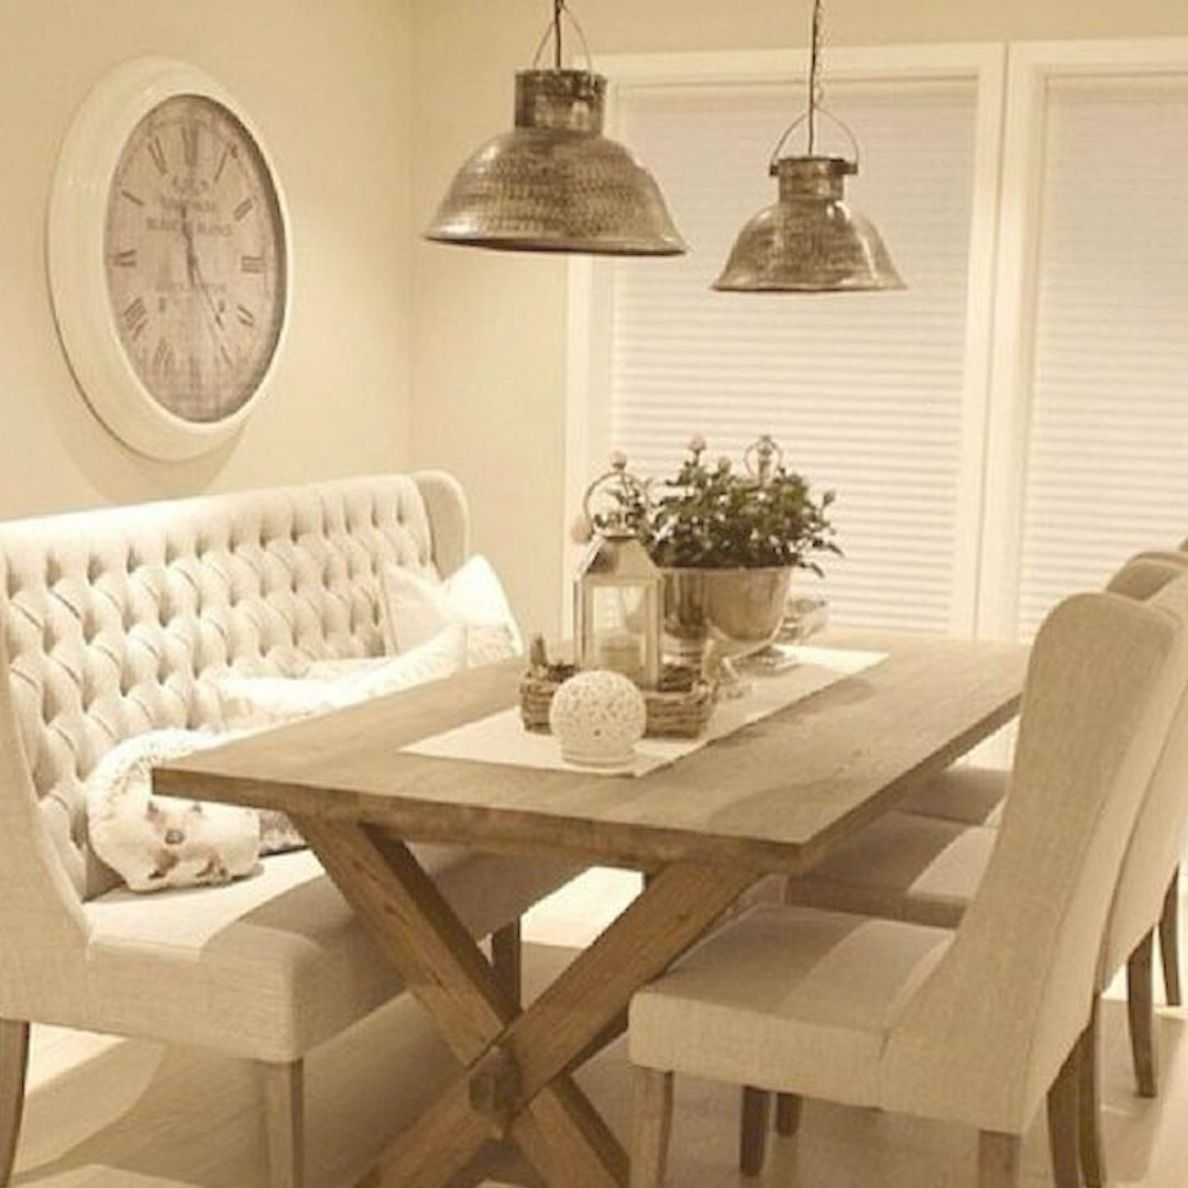 55 Stunning Diy Projects Furniture Tables Dining Rooms Design Ideas In 2020 Dining Room Small Dining Room Design Dining Room Table Decor